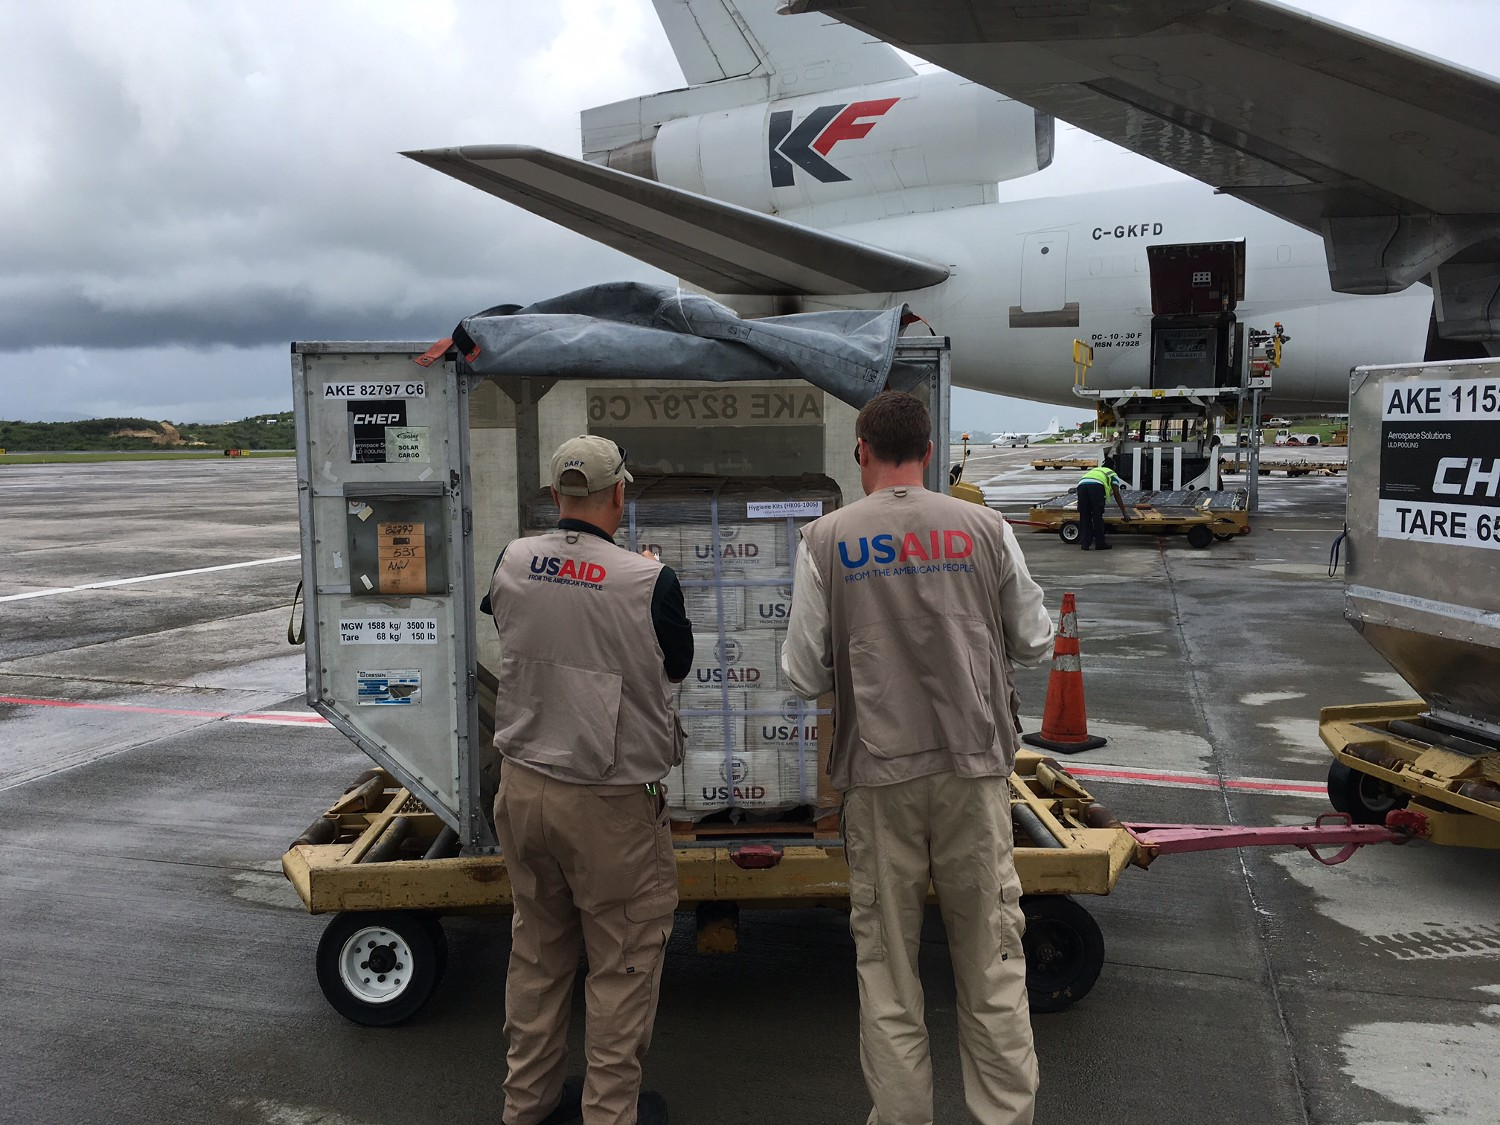 A cargo plane carrying USAID relief supplies for families affected by Hurricane Irma arrived in Antigua on September 14. Photo credit: Peter Schecter, USAID/OFDA